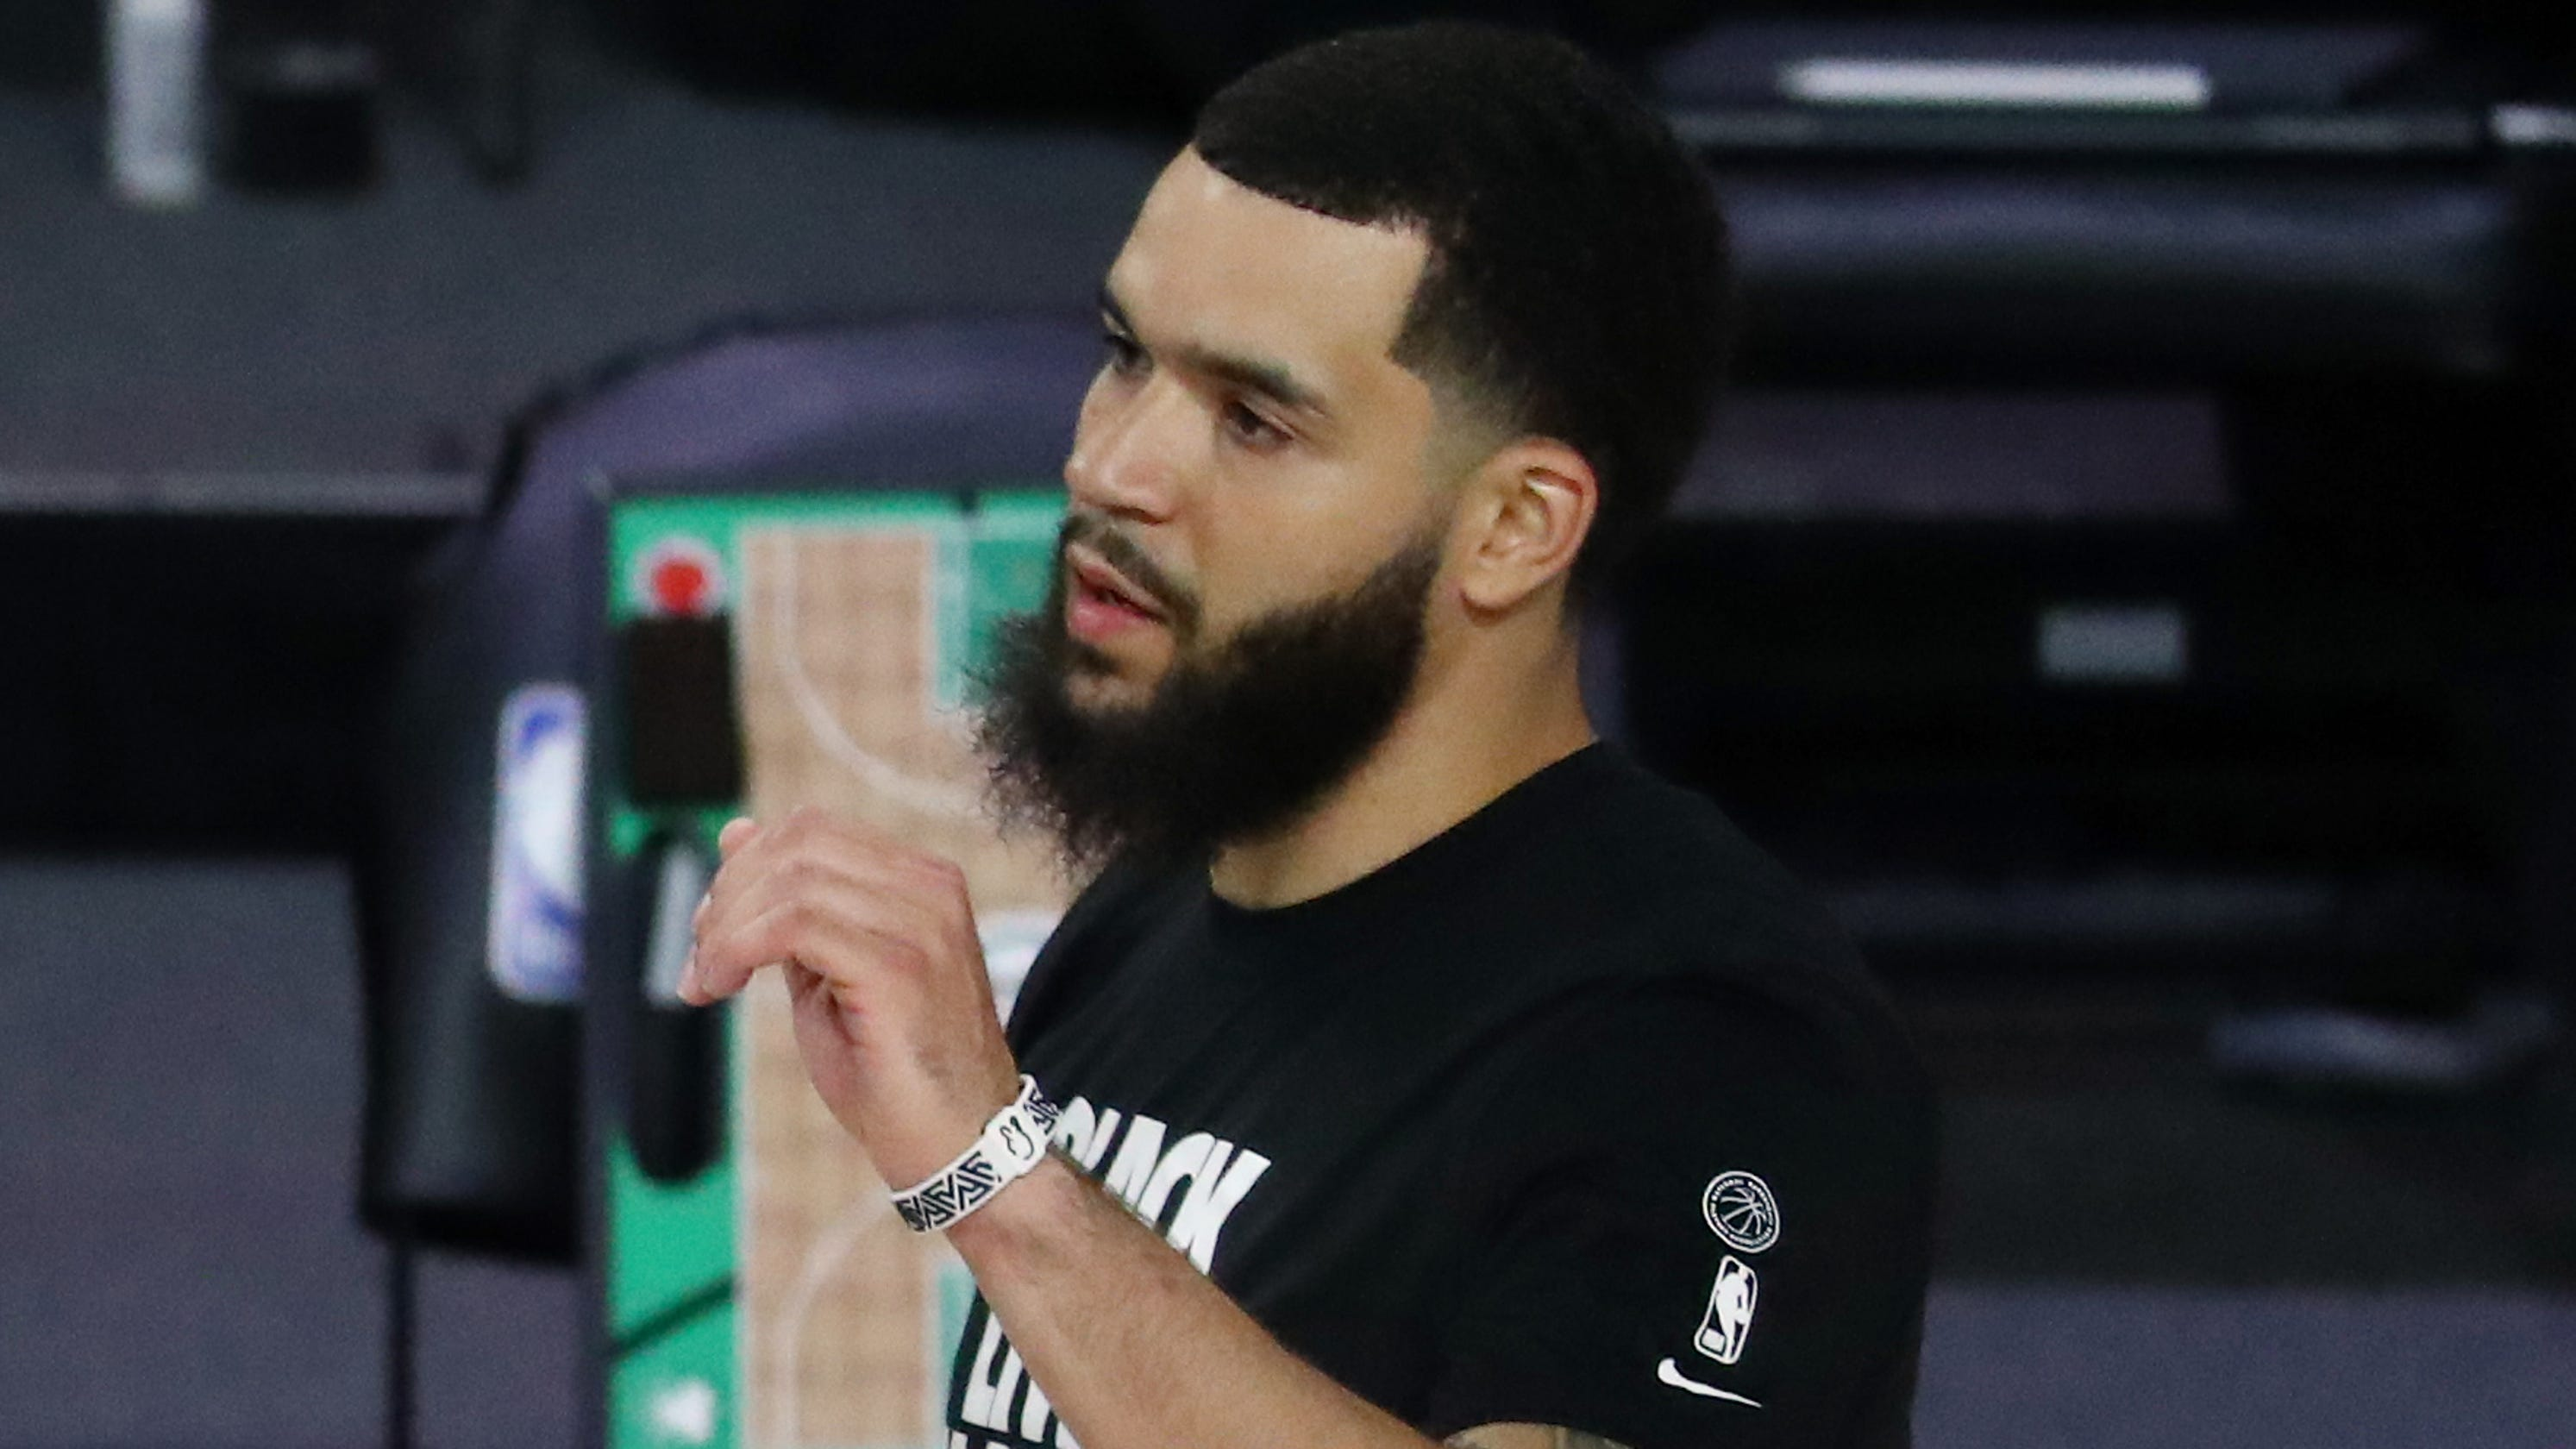 NBA players beginning to be reunited with families inside bubble